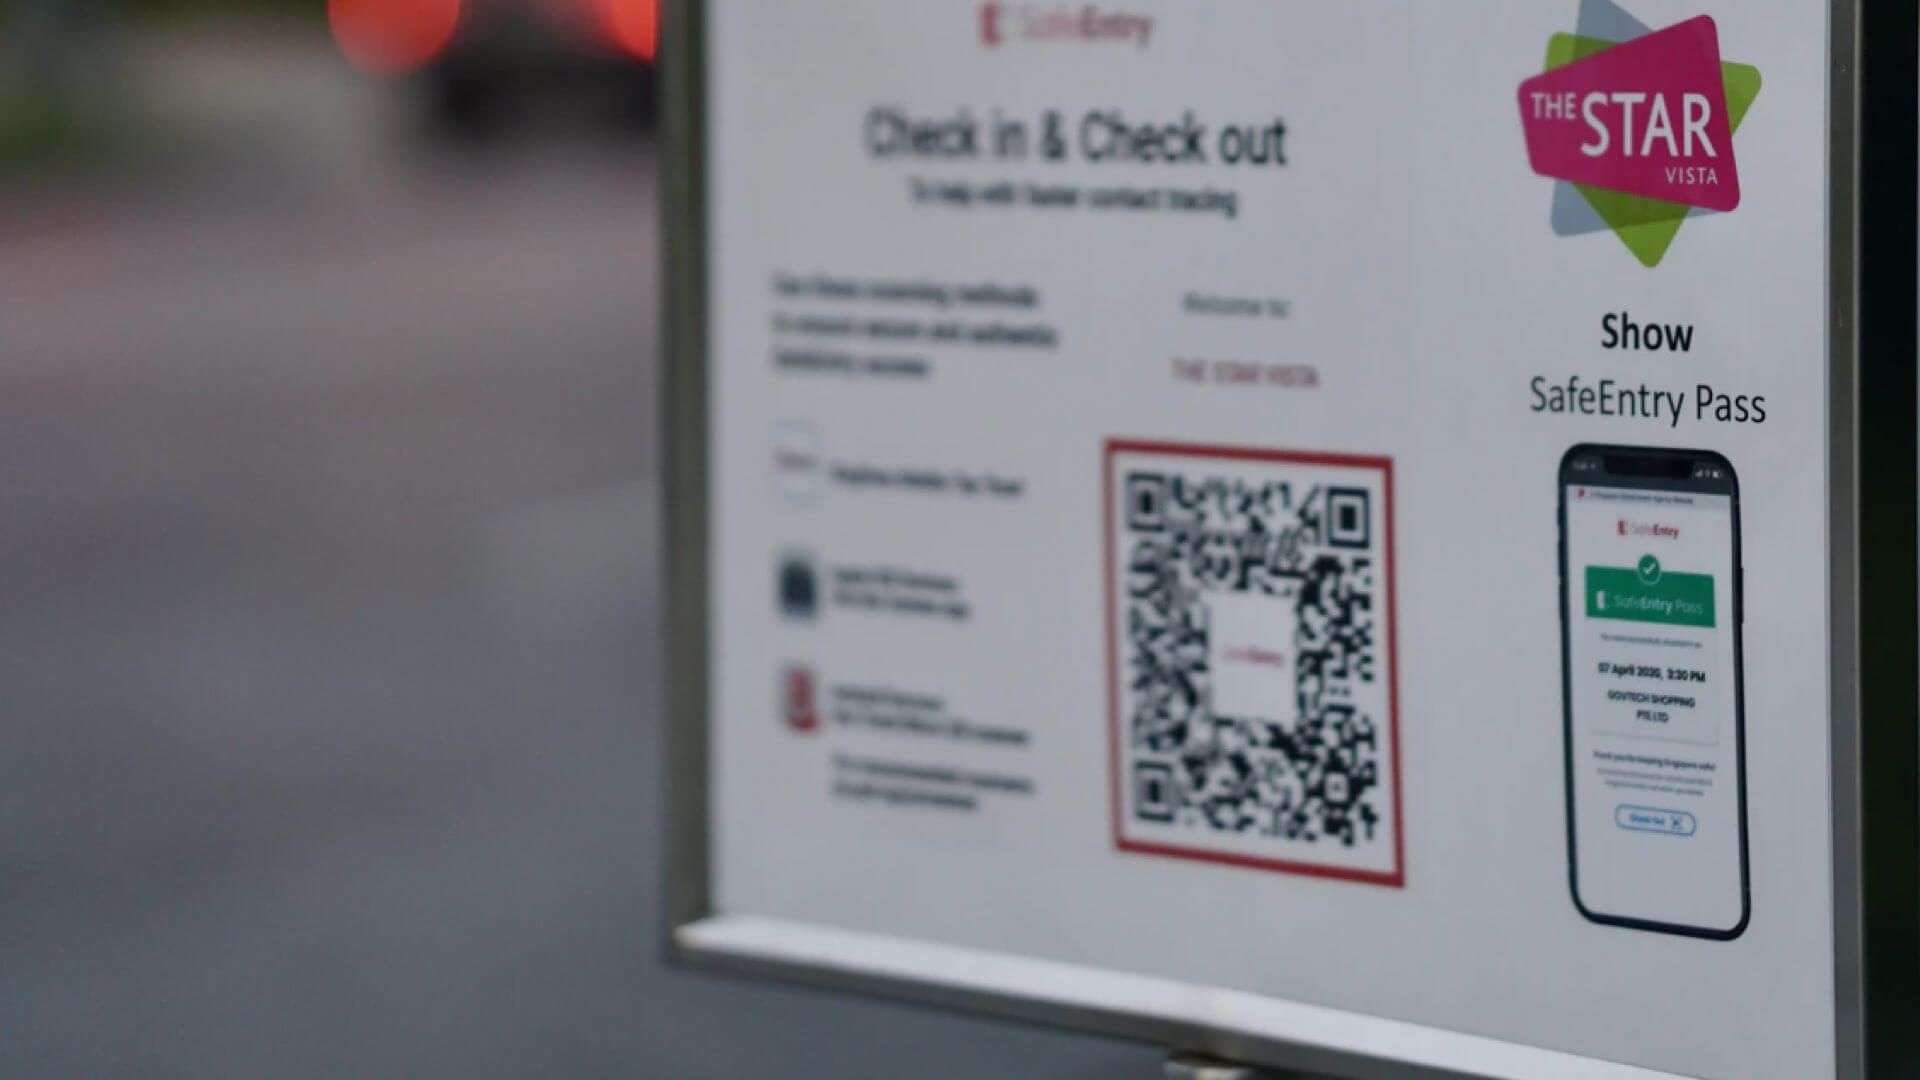 A venue Check-In sign with QR Code.